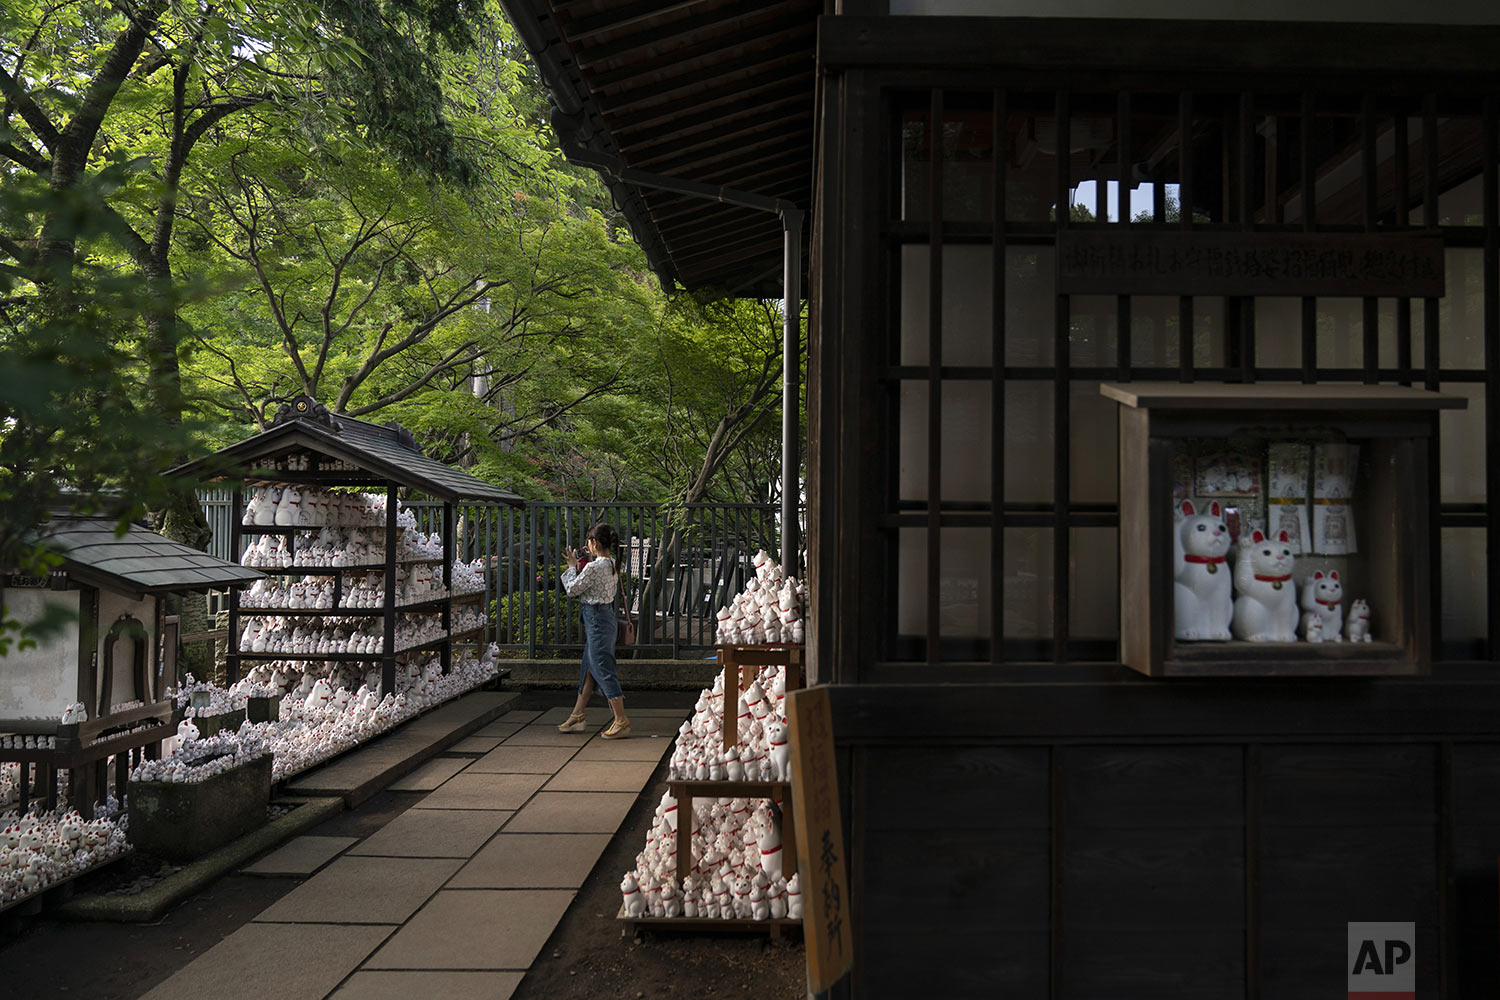 A visitor takes photos of beckoning cat figurines at Gotokuji Temple in Tokyo, Tuesday, June 25, 2019. (AP Photo/Jae C. Hong)